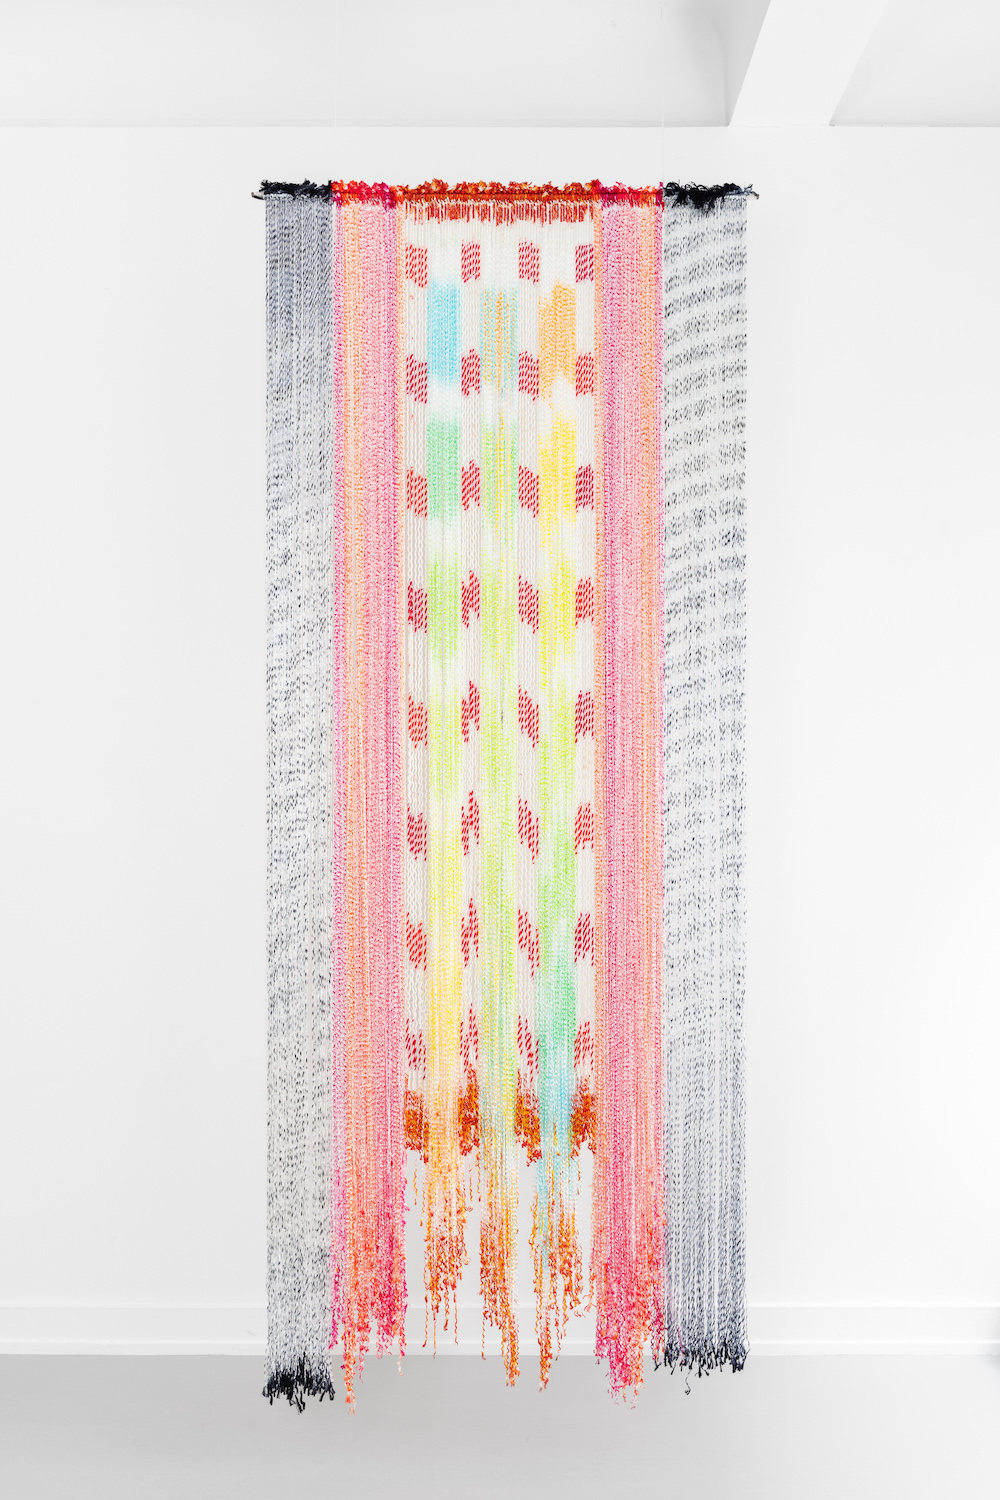 Ellen Grieg, Slør, 2004, textile work in hand coloured nylon, 285 x 100 cm